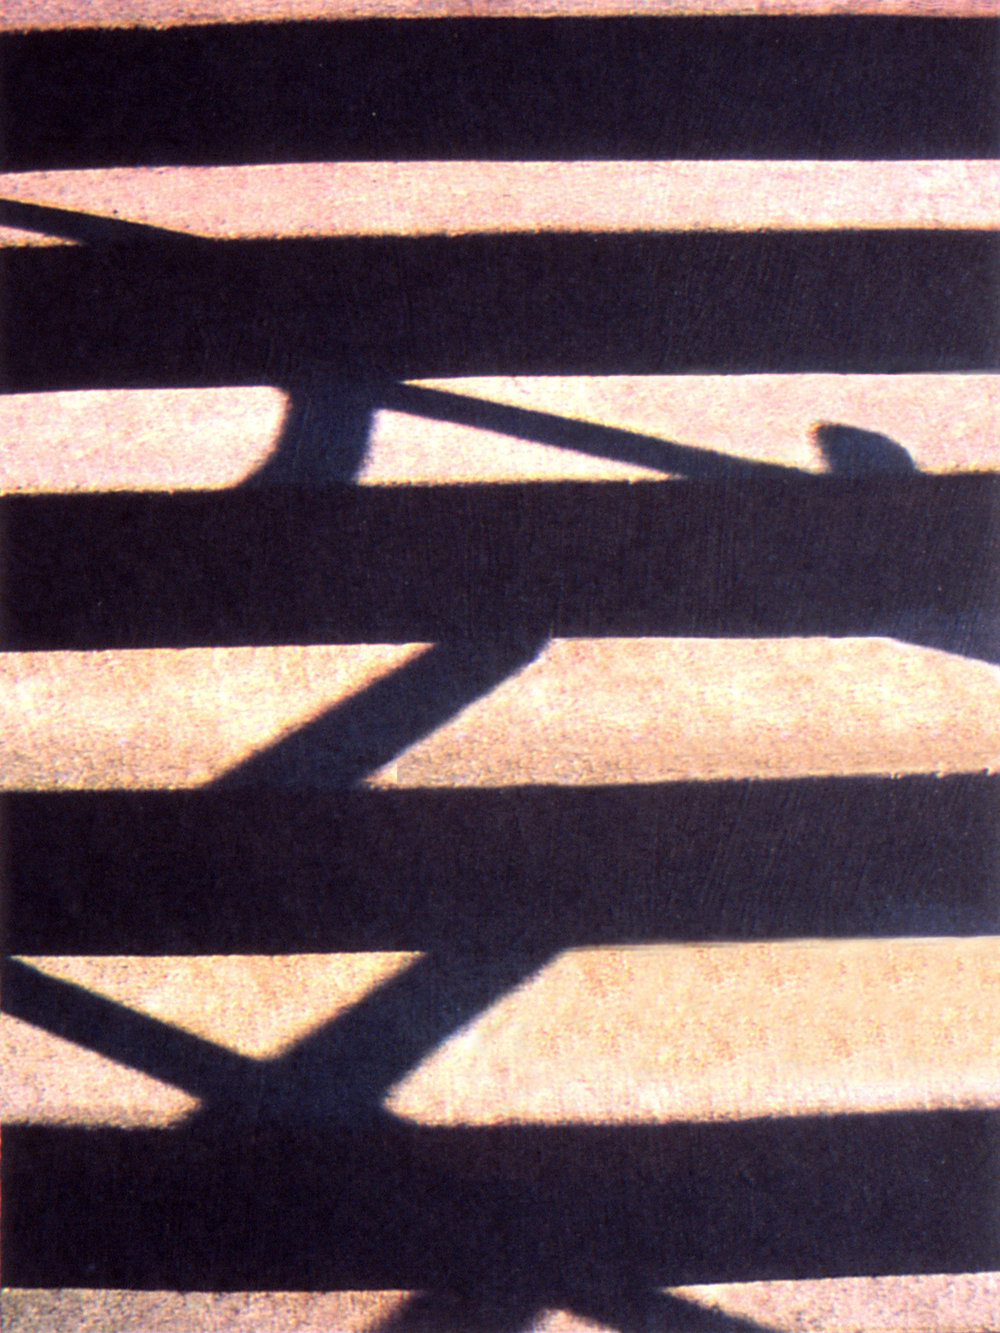 Architecture 2, 2002, Four-color lithograph, 12 x 9in. (Chine Collé on 30 x 23.5 in. BFK Rives